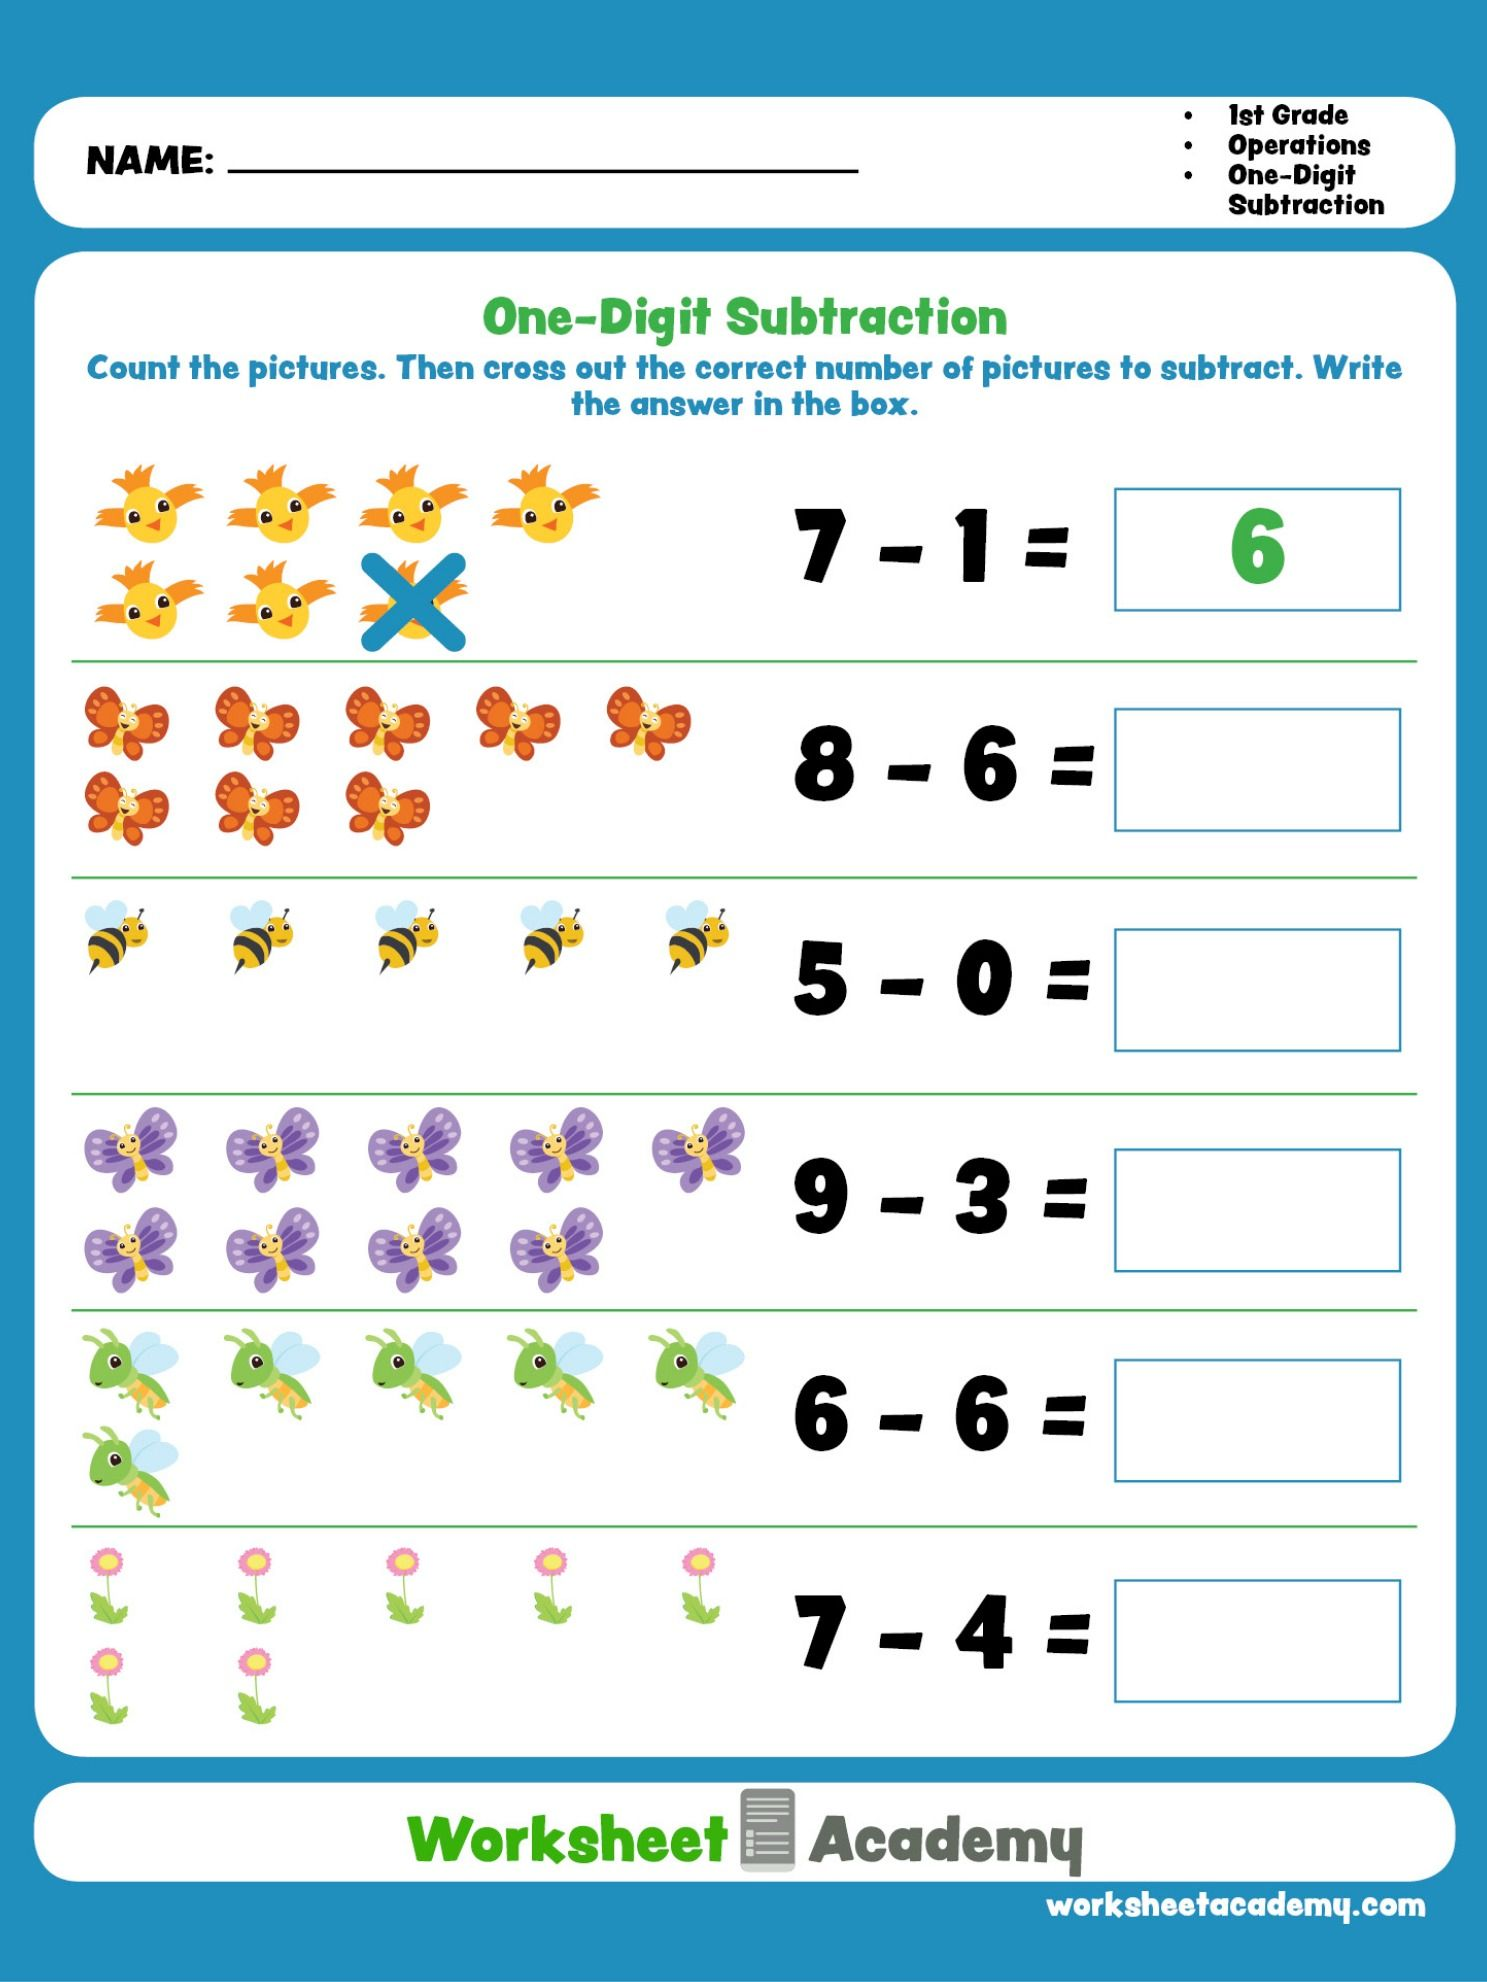 Help Your Student Master Beginning Subtraction